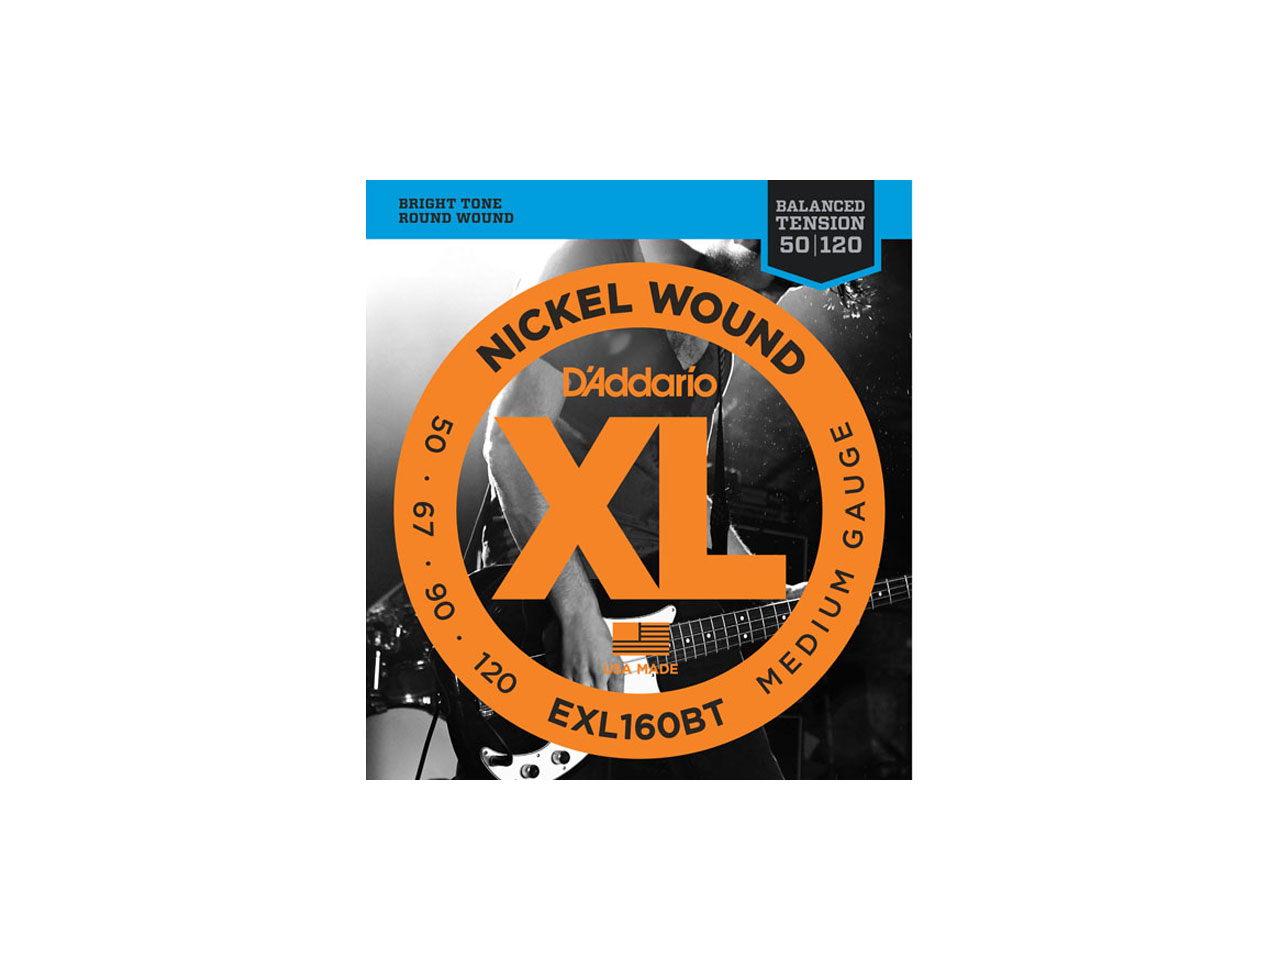 D'Addario(ダダリオ) XL Nickel Round Wound ,Long Scale , Balanced Tension Medium / EXL160BT (エレキベース弦)